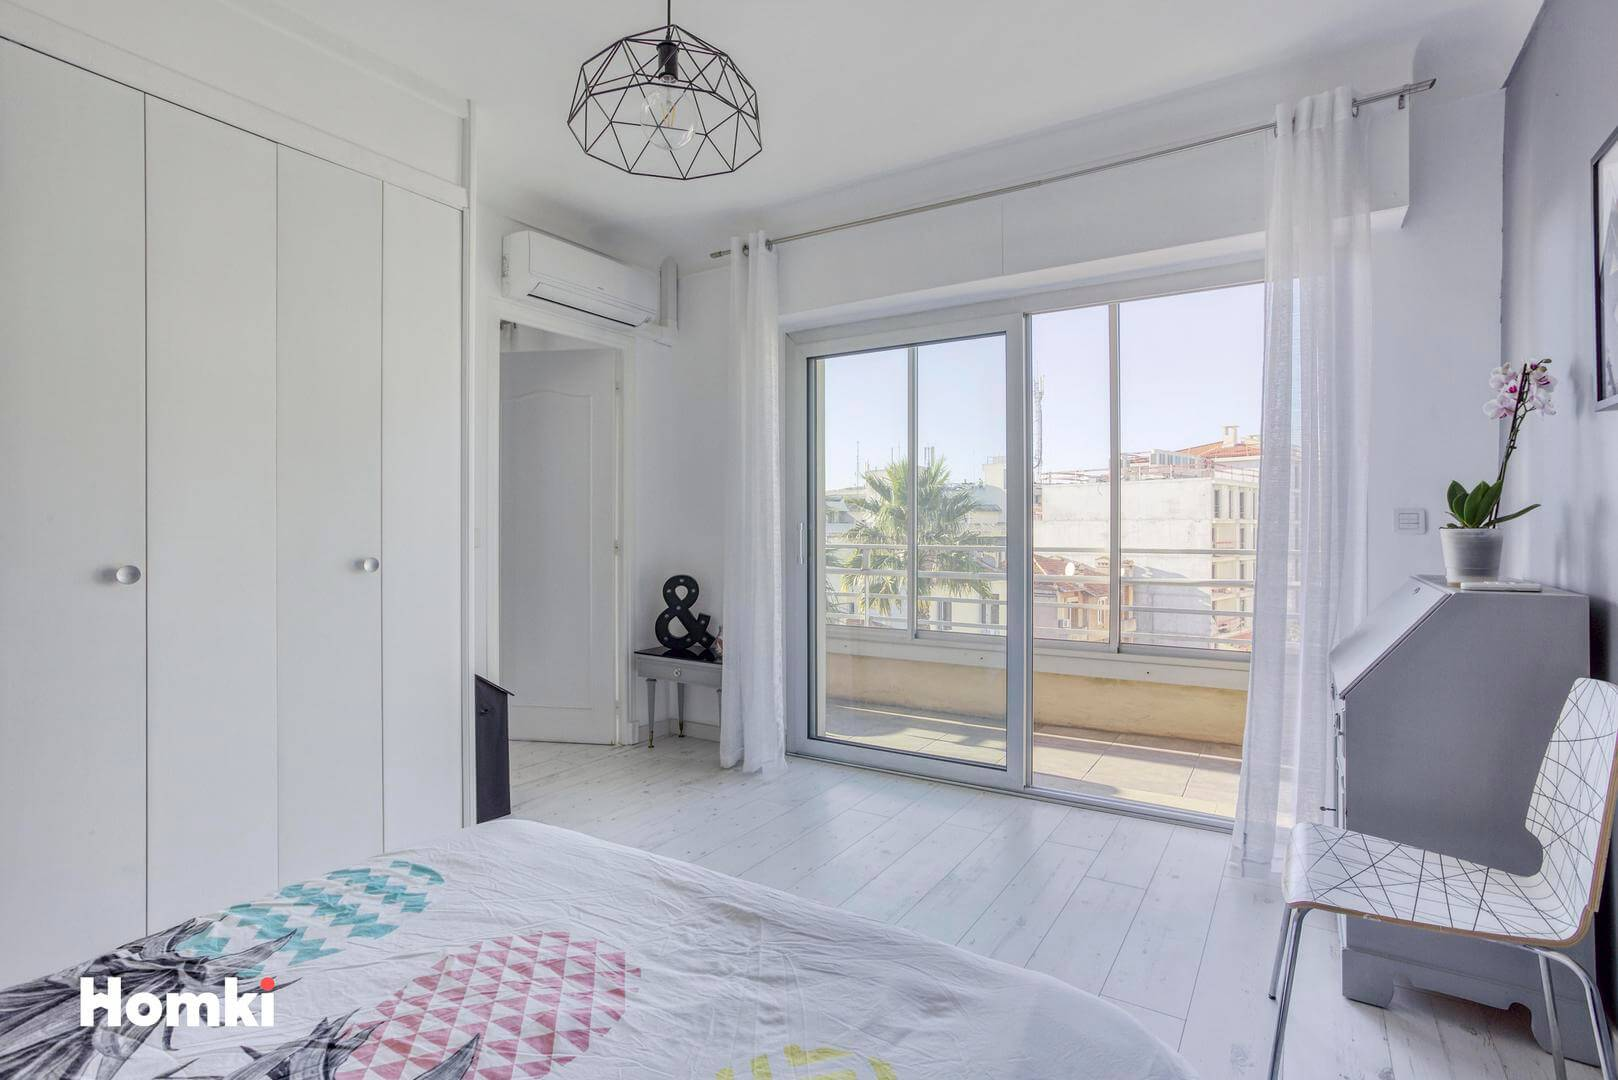 Homki - Vente Appartement  de 70.5 m² à Antibes 06600